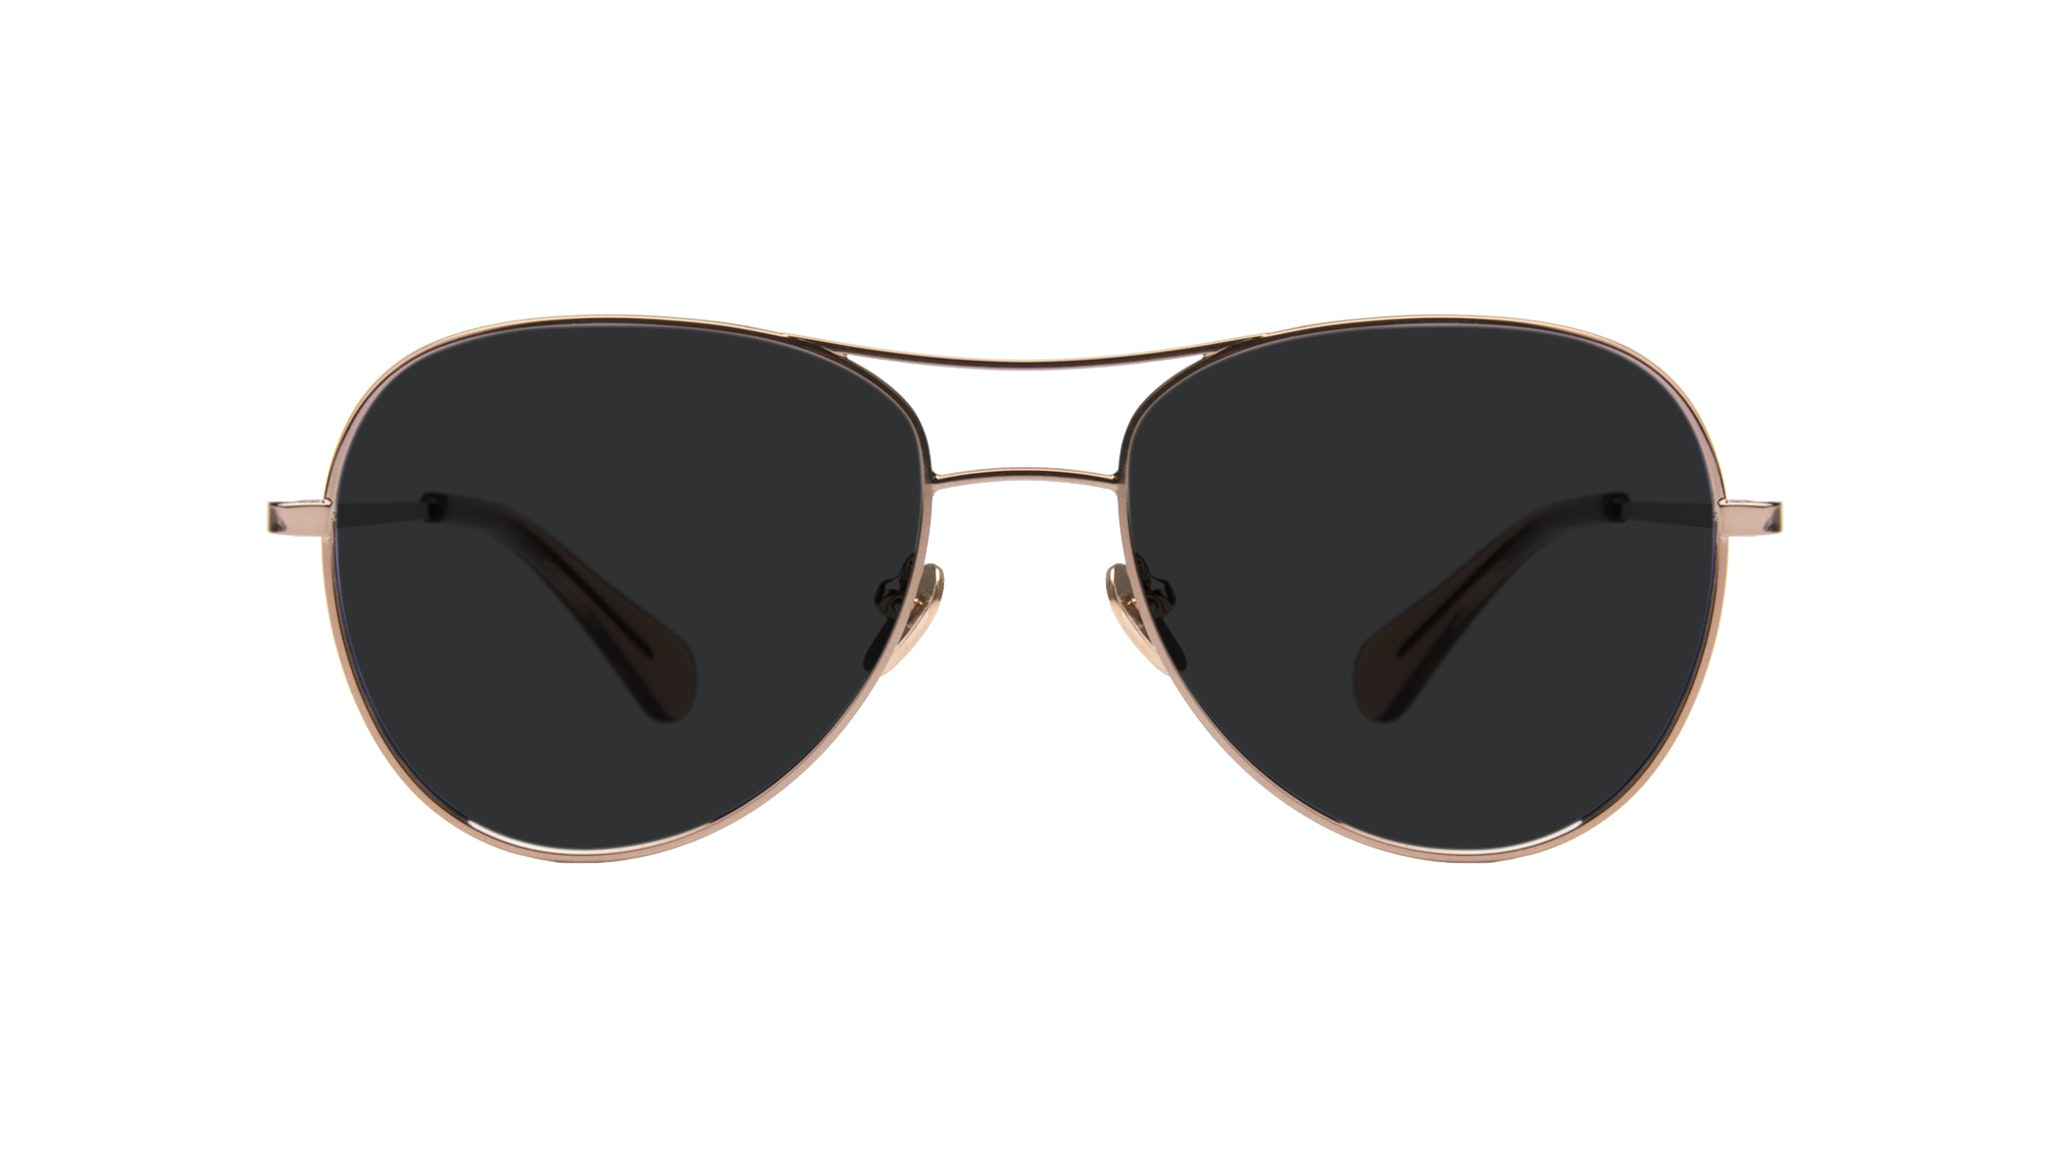 Affordable Fashion Glasses Aviator Sunglasses Women Want Rose Gold Front